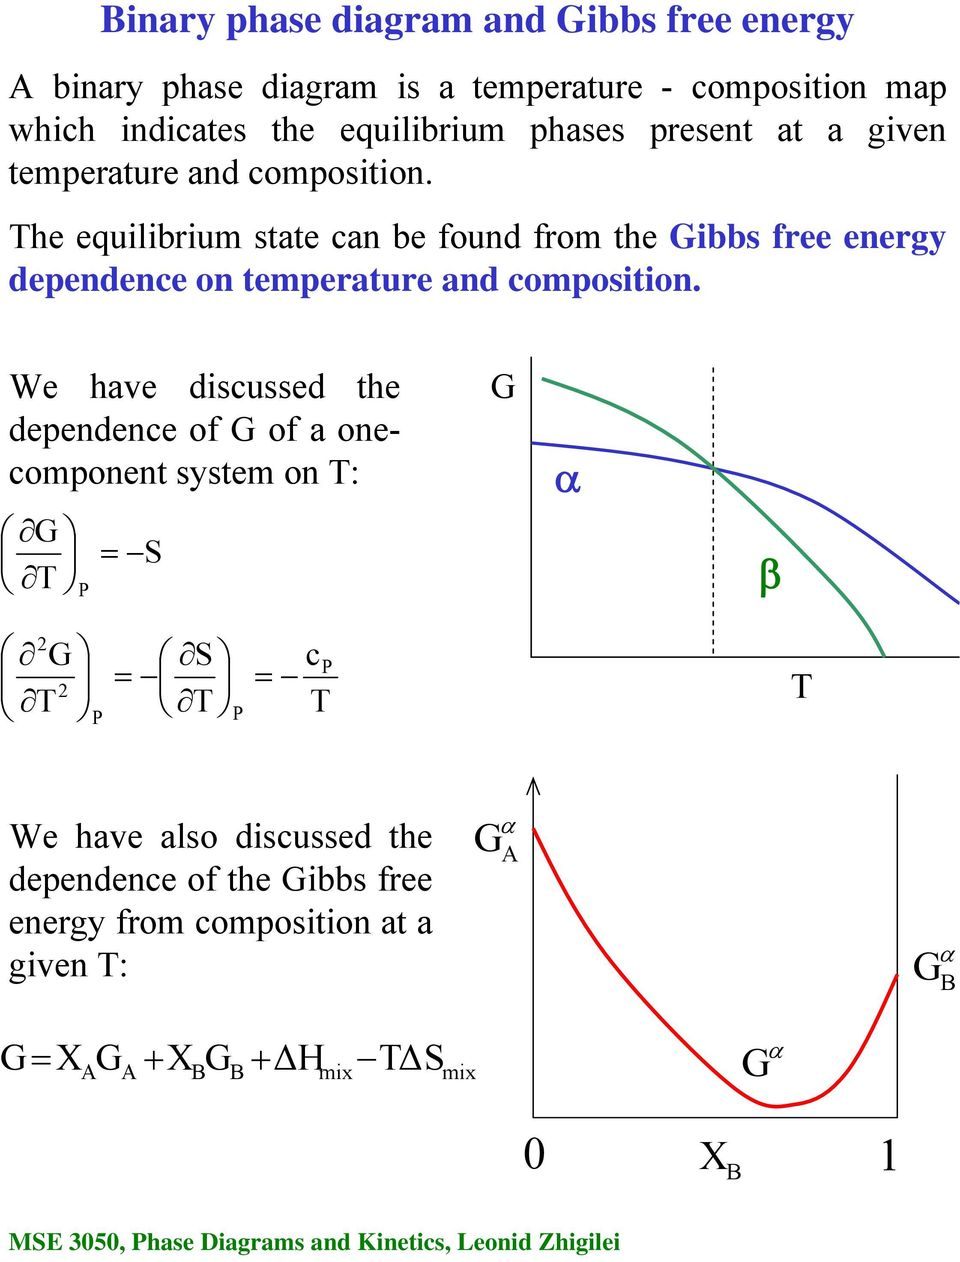 Binary phase diagrams pdf the equilibrium state can be found from the ibbs free energy dependence on temperature and composition ccuart Images